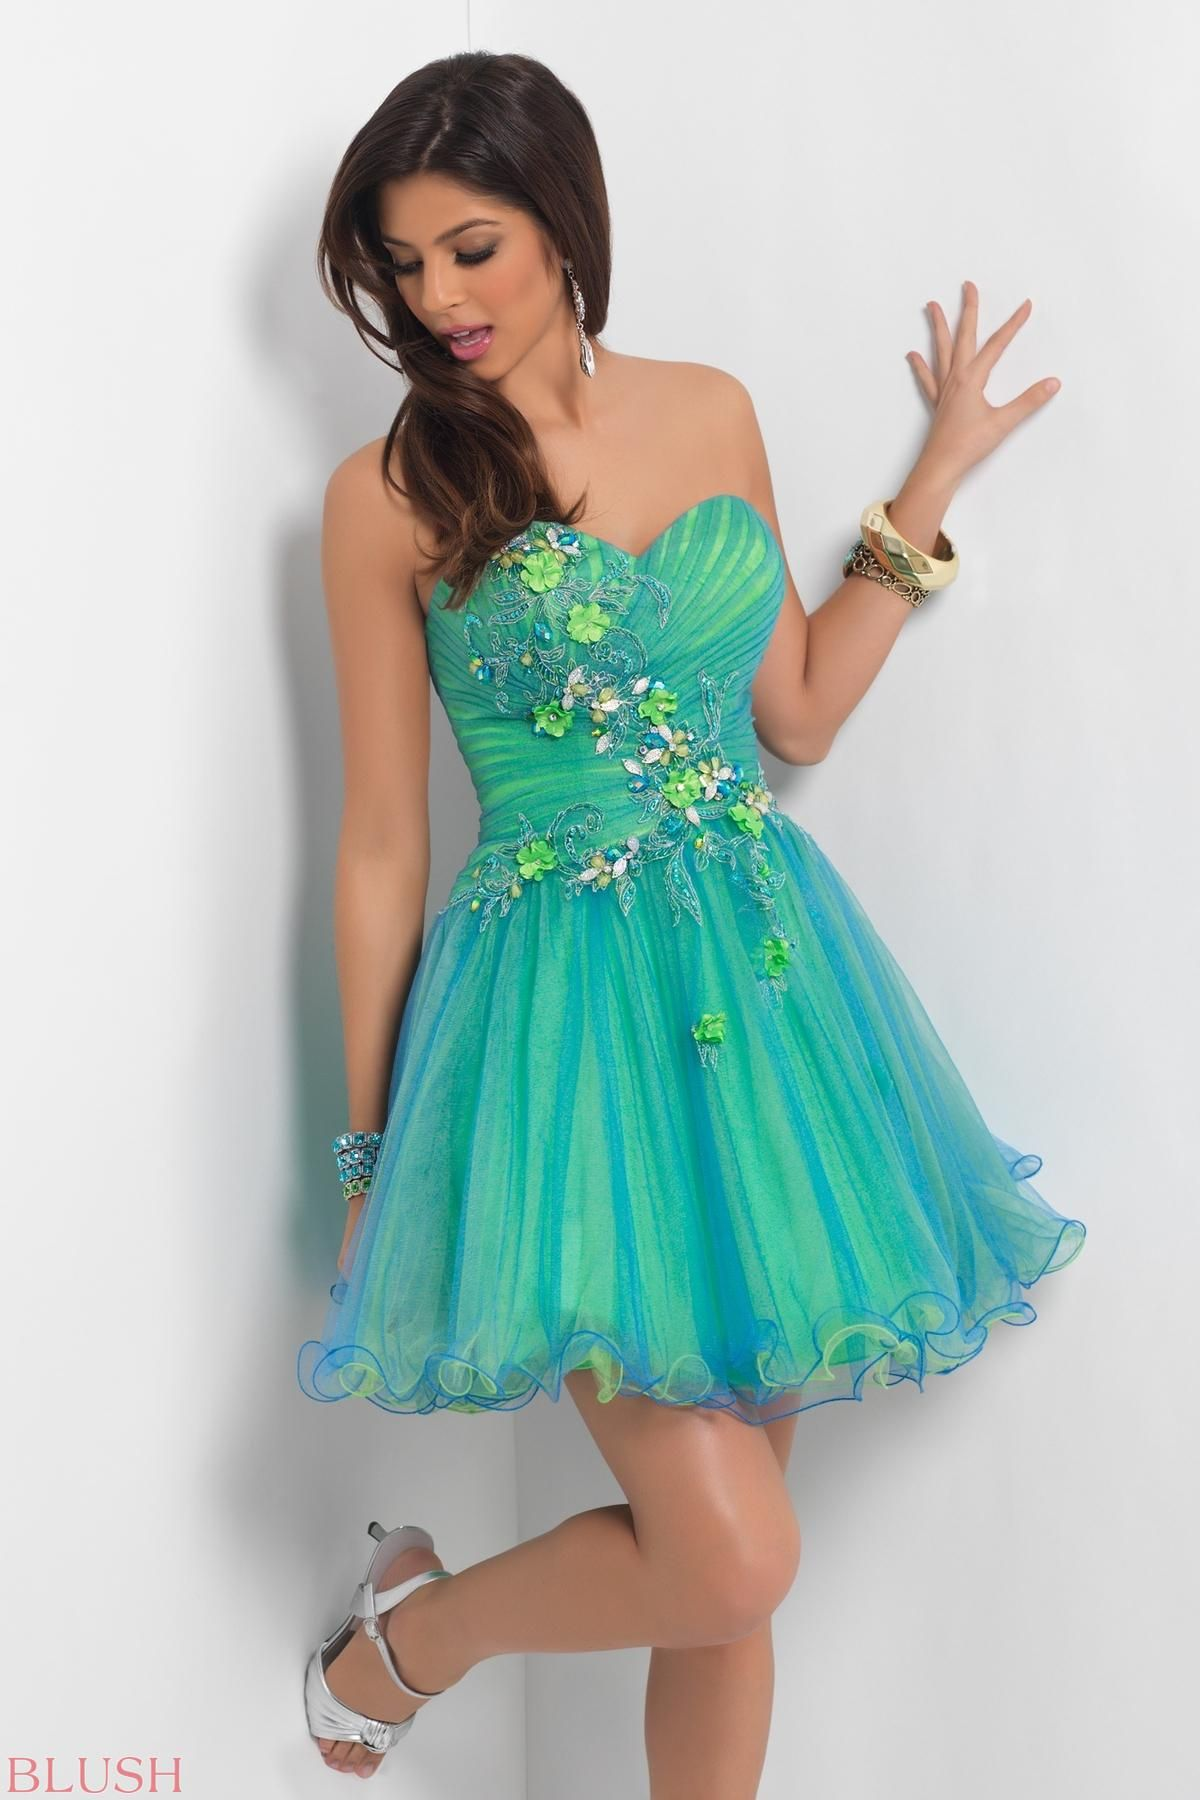 Rock the party! This hot dance dress is carressed in a spray of ...